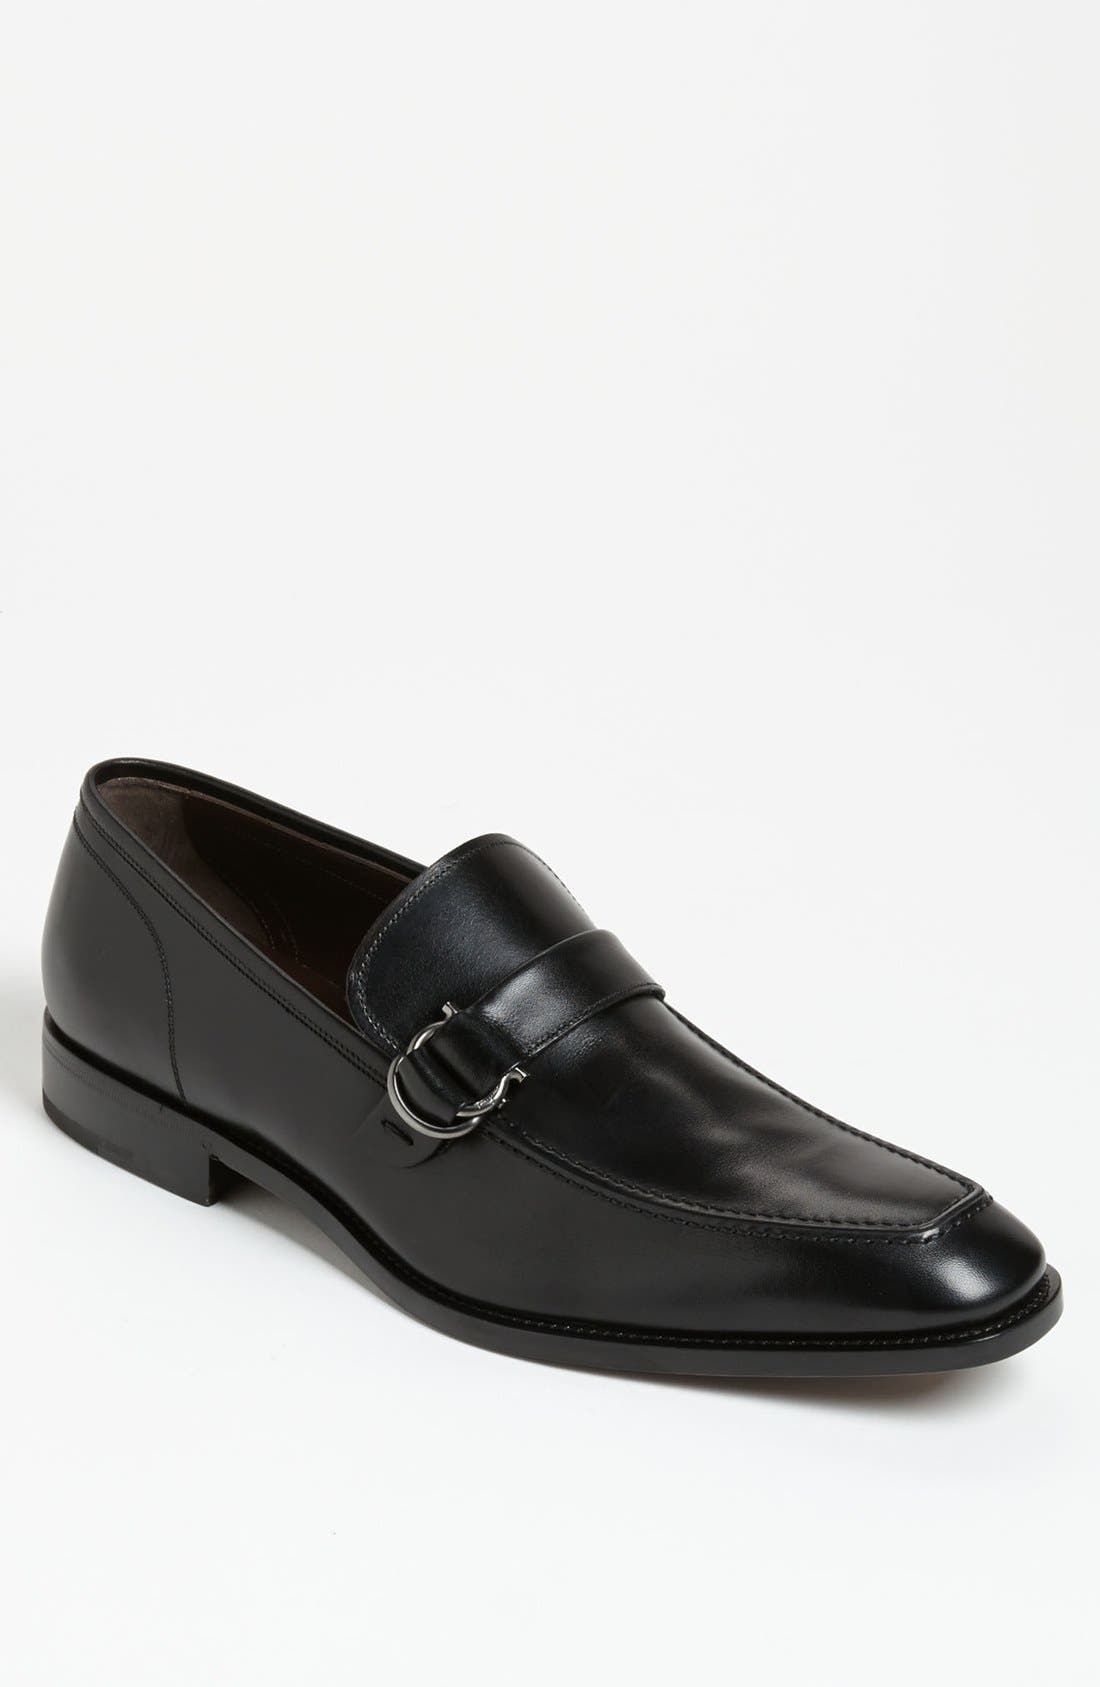 Alternate Image 1 Selected - Salvatore Ferragamo 'Teo' Bit Loafer